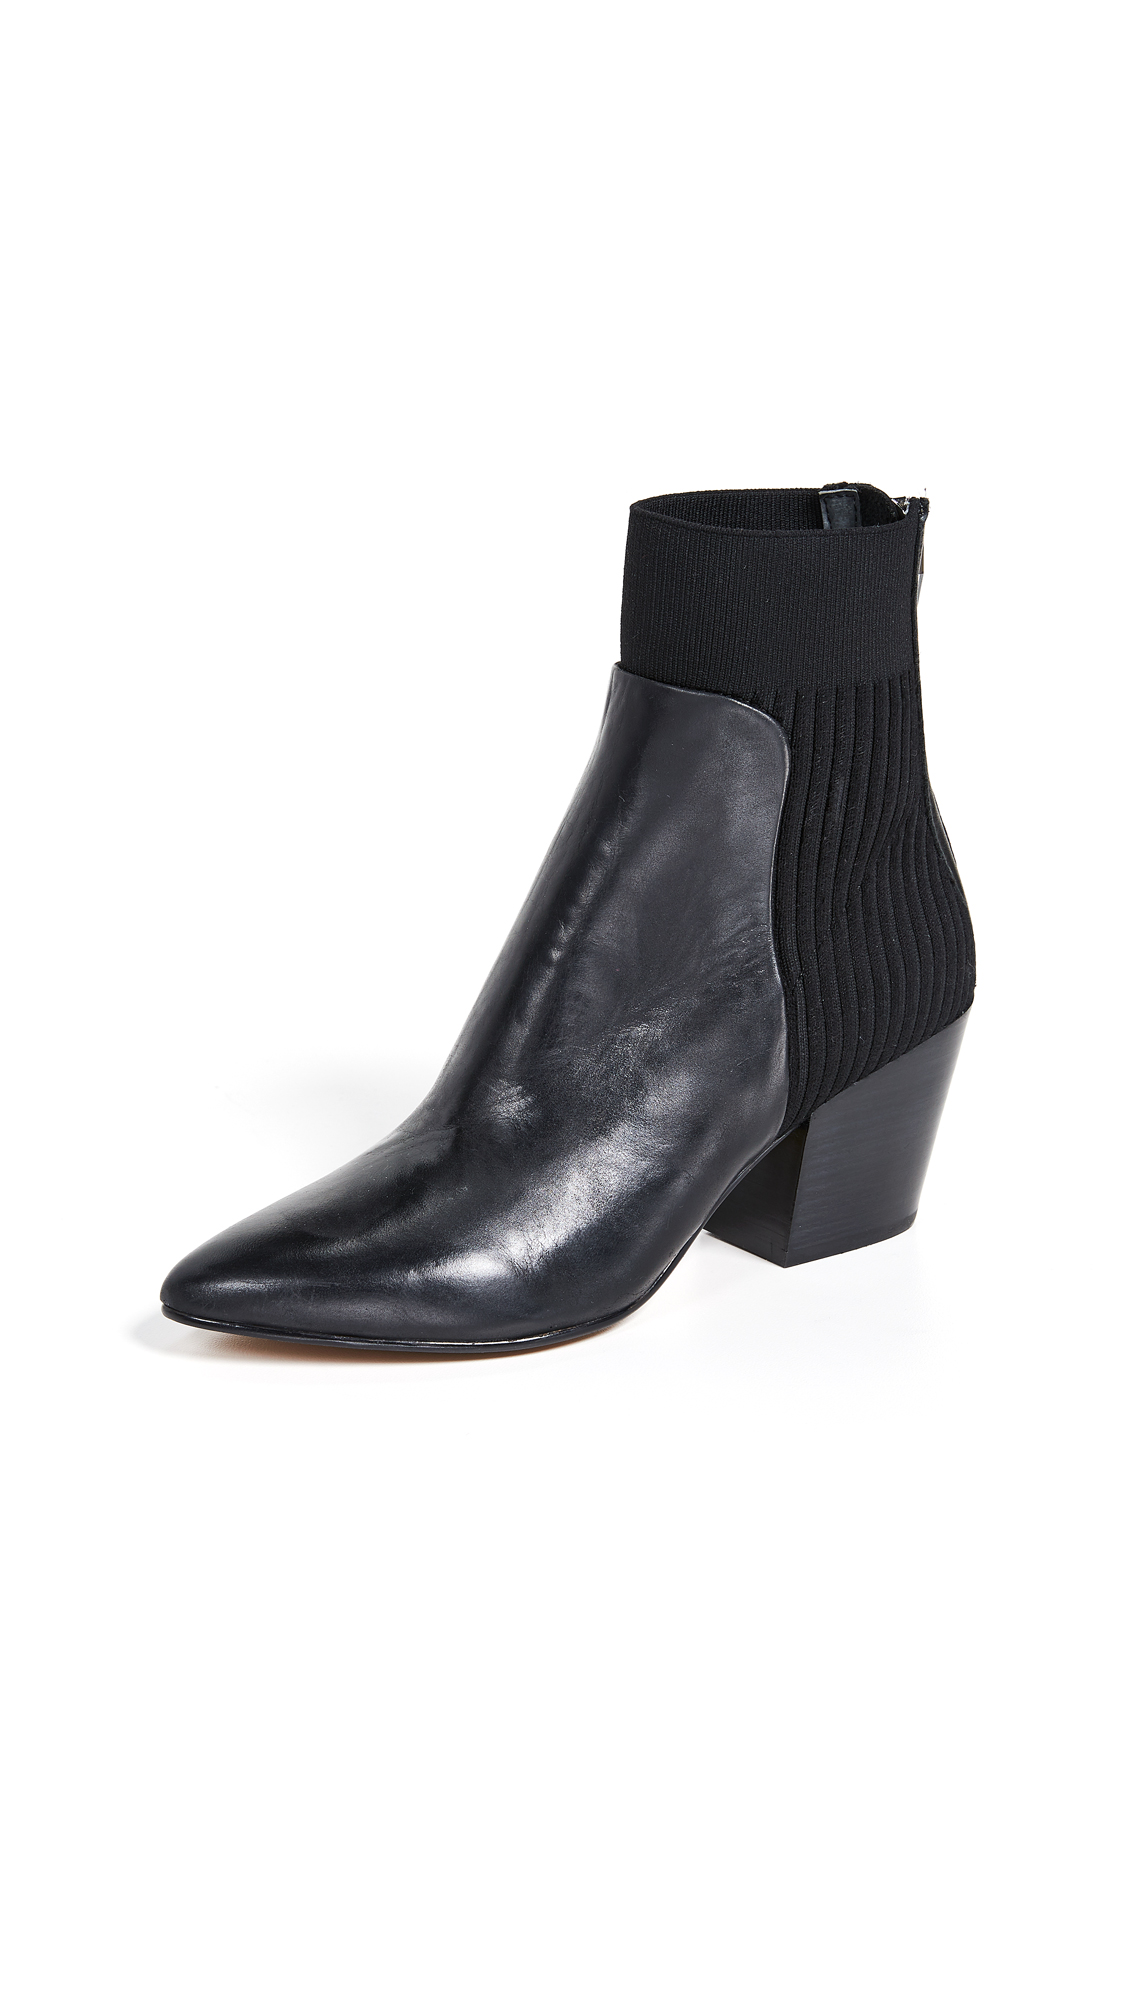 Dolce Vita Caris Sock Booties - Black